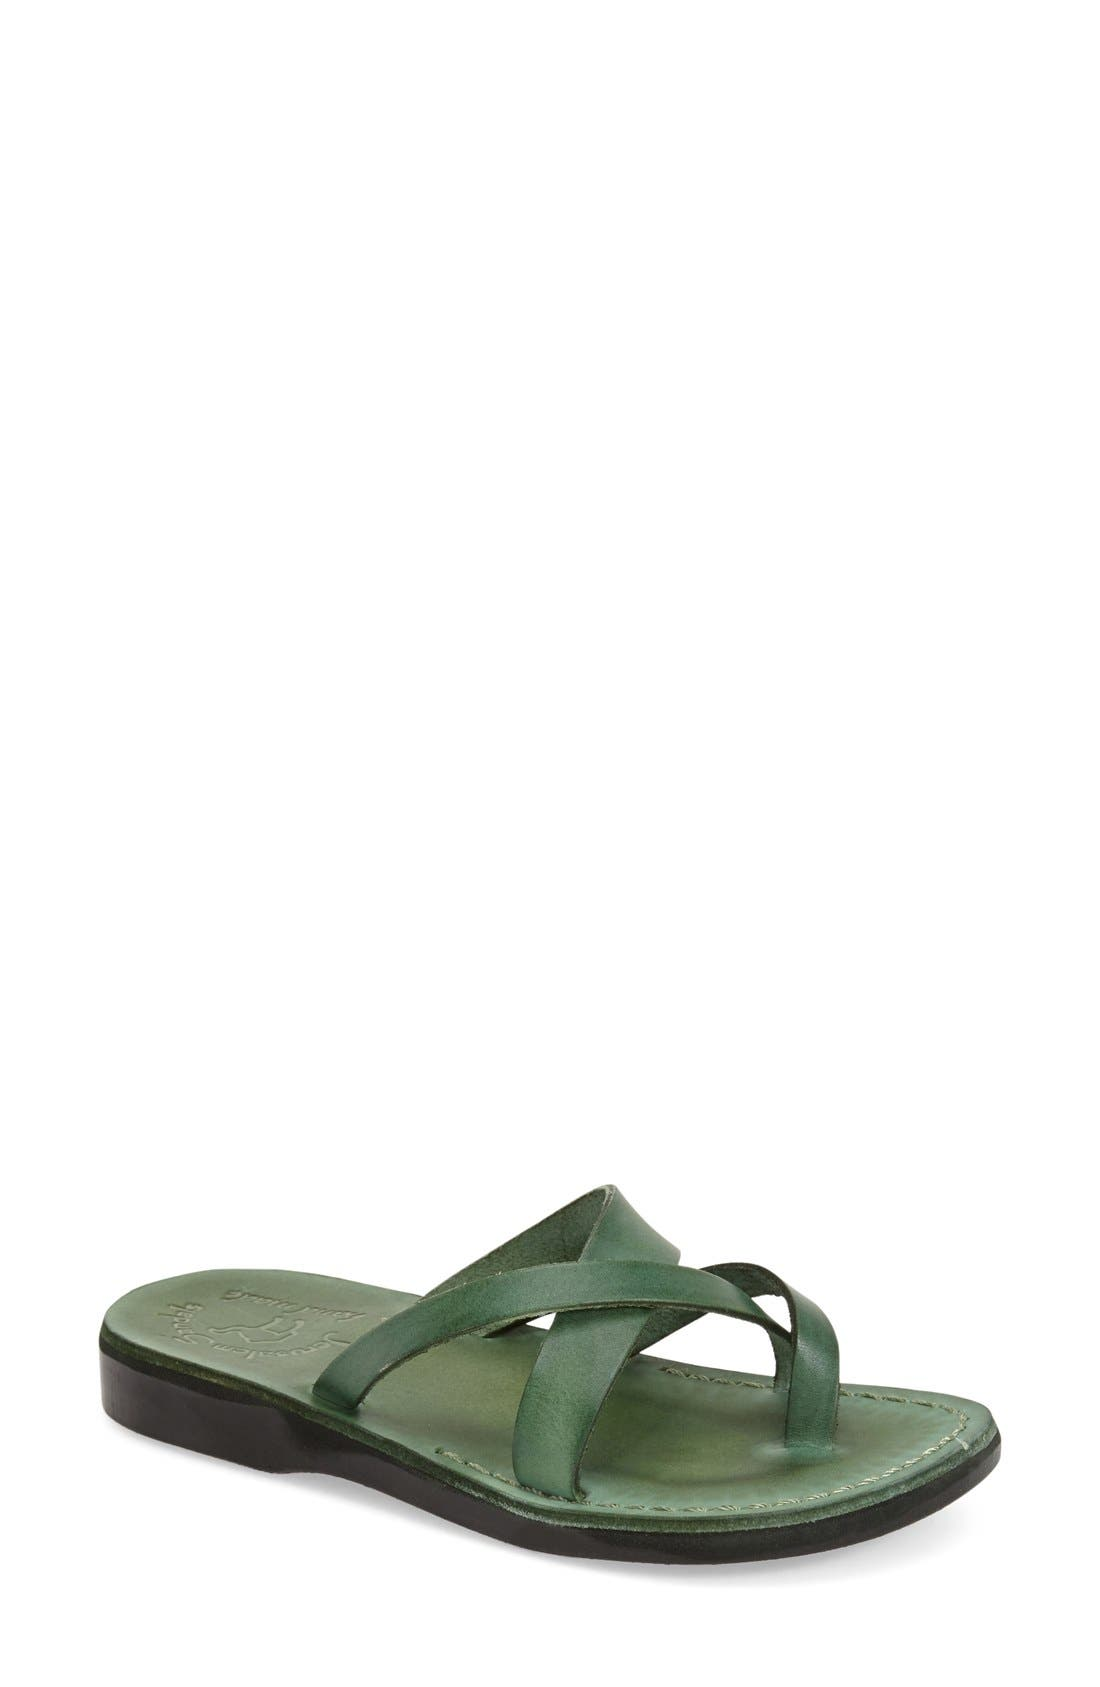 'Abigail' Strappy Slide Sandal,                             Main thumbnail 1, color,                             Green Leather